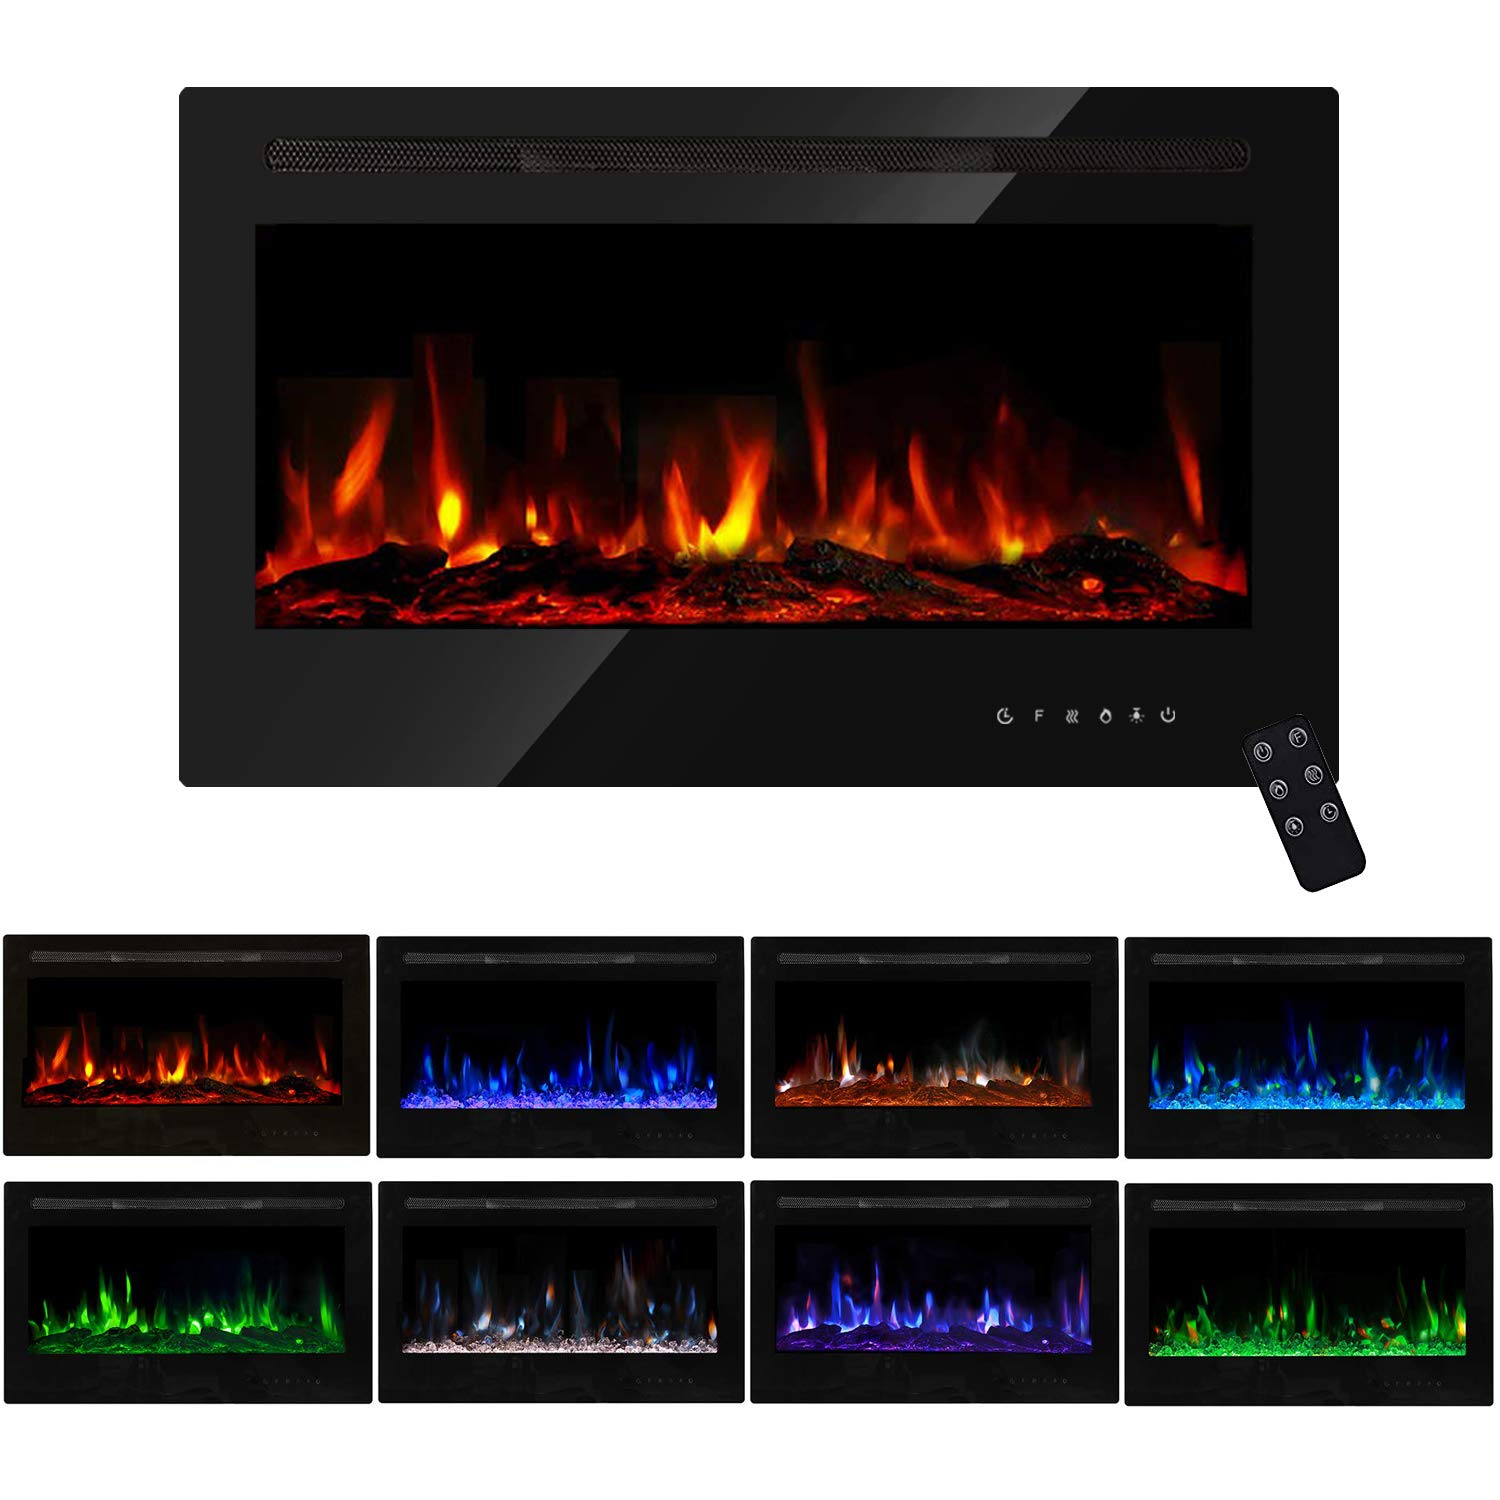 PieDle 36'' Electric Fireplace, in Wall Recessed & Wall Mounted LED Heater, Log Set & Crystal, 5 Flame Settings, Realistic 9 Color Flame, Touch Screen, Remote Control, 750/1500W, Black (36 inch) by PieDle